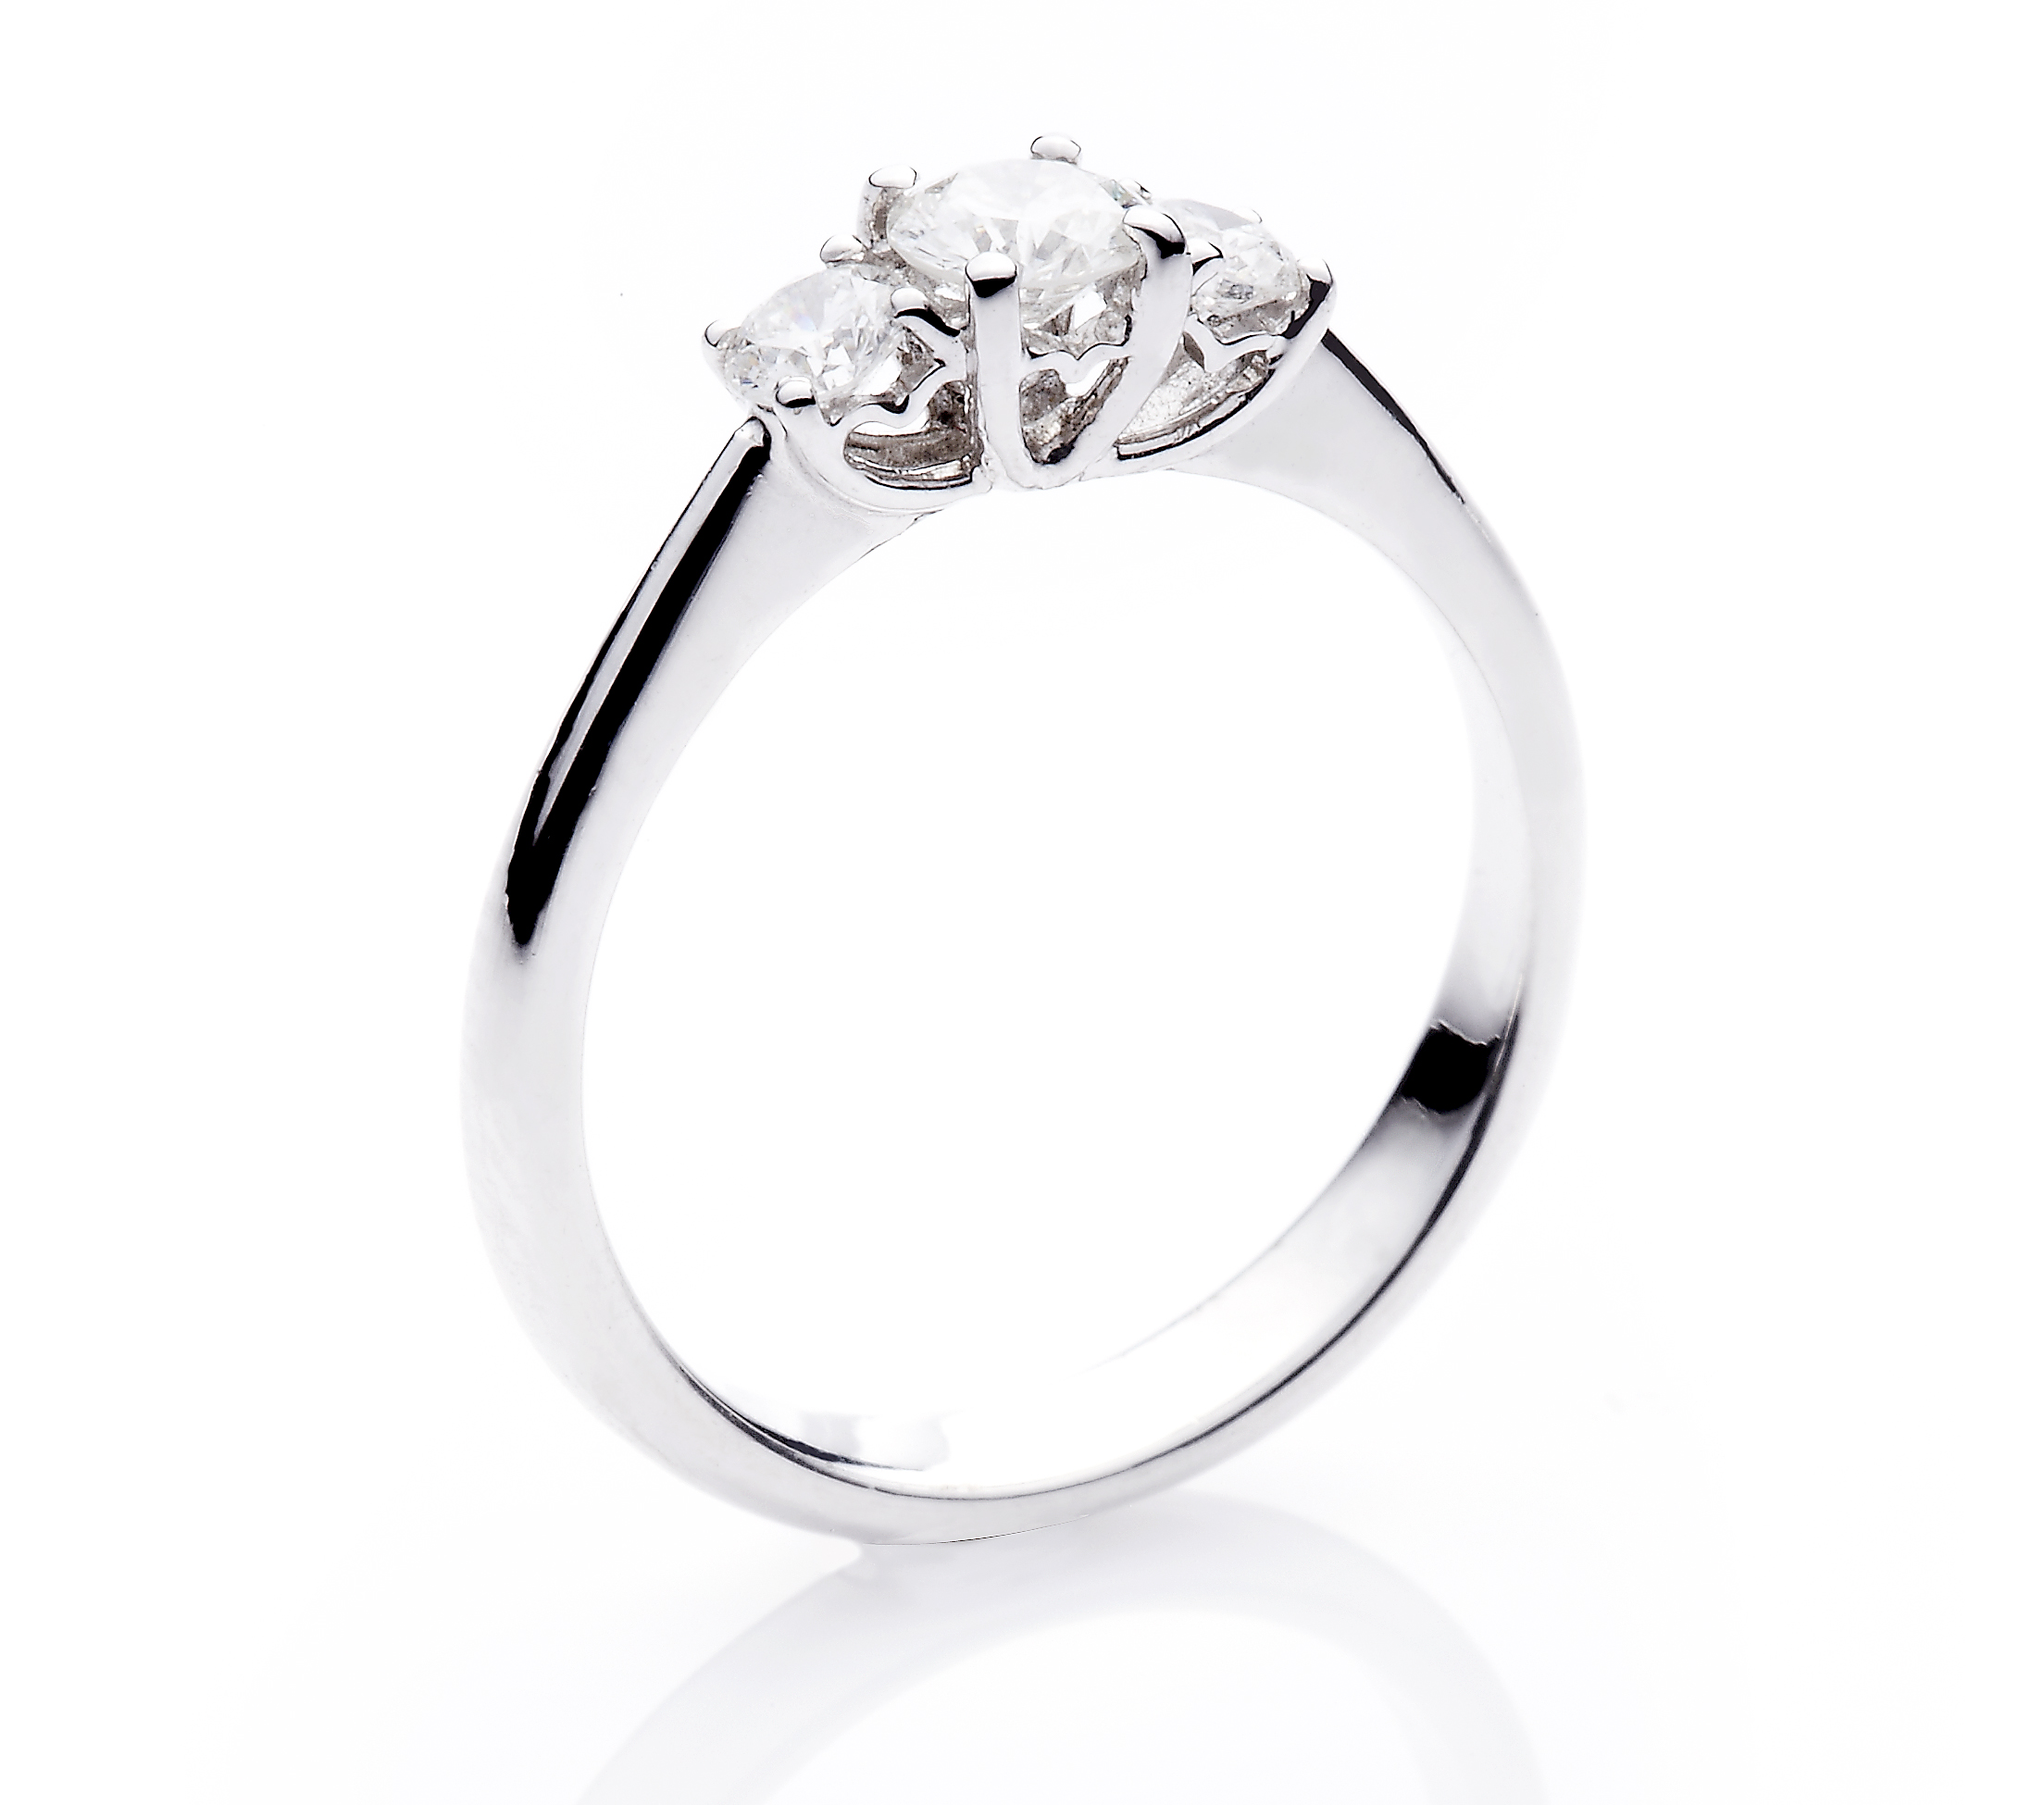 platinum white ring jewellery engagement and rings pear bride cut mccaul fine contemporary modern diamond goldsmiths